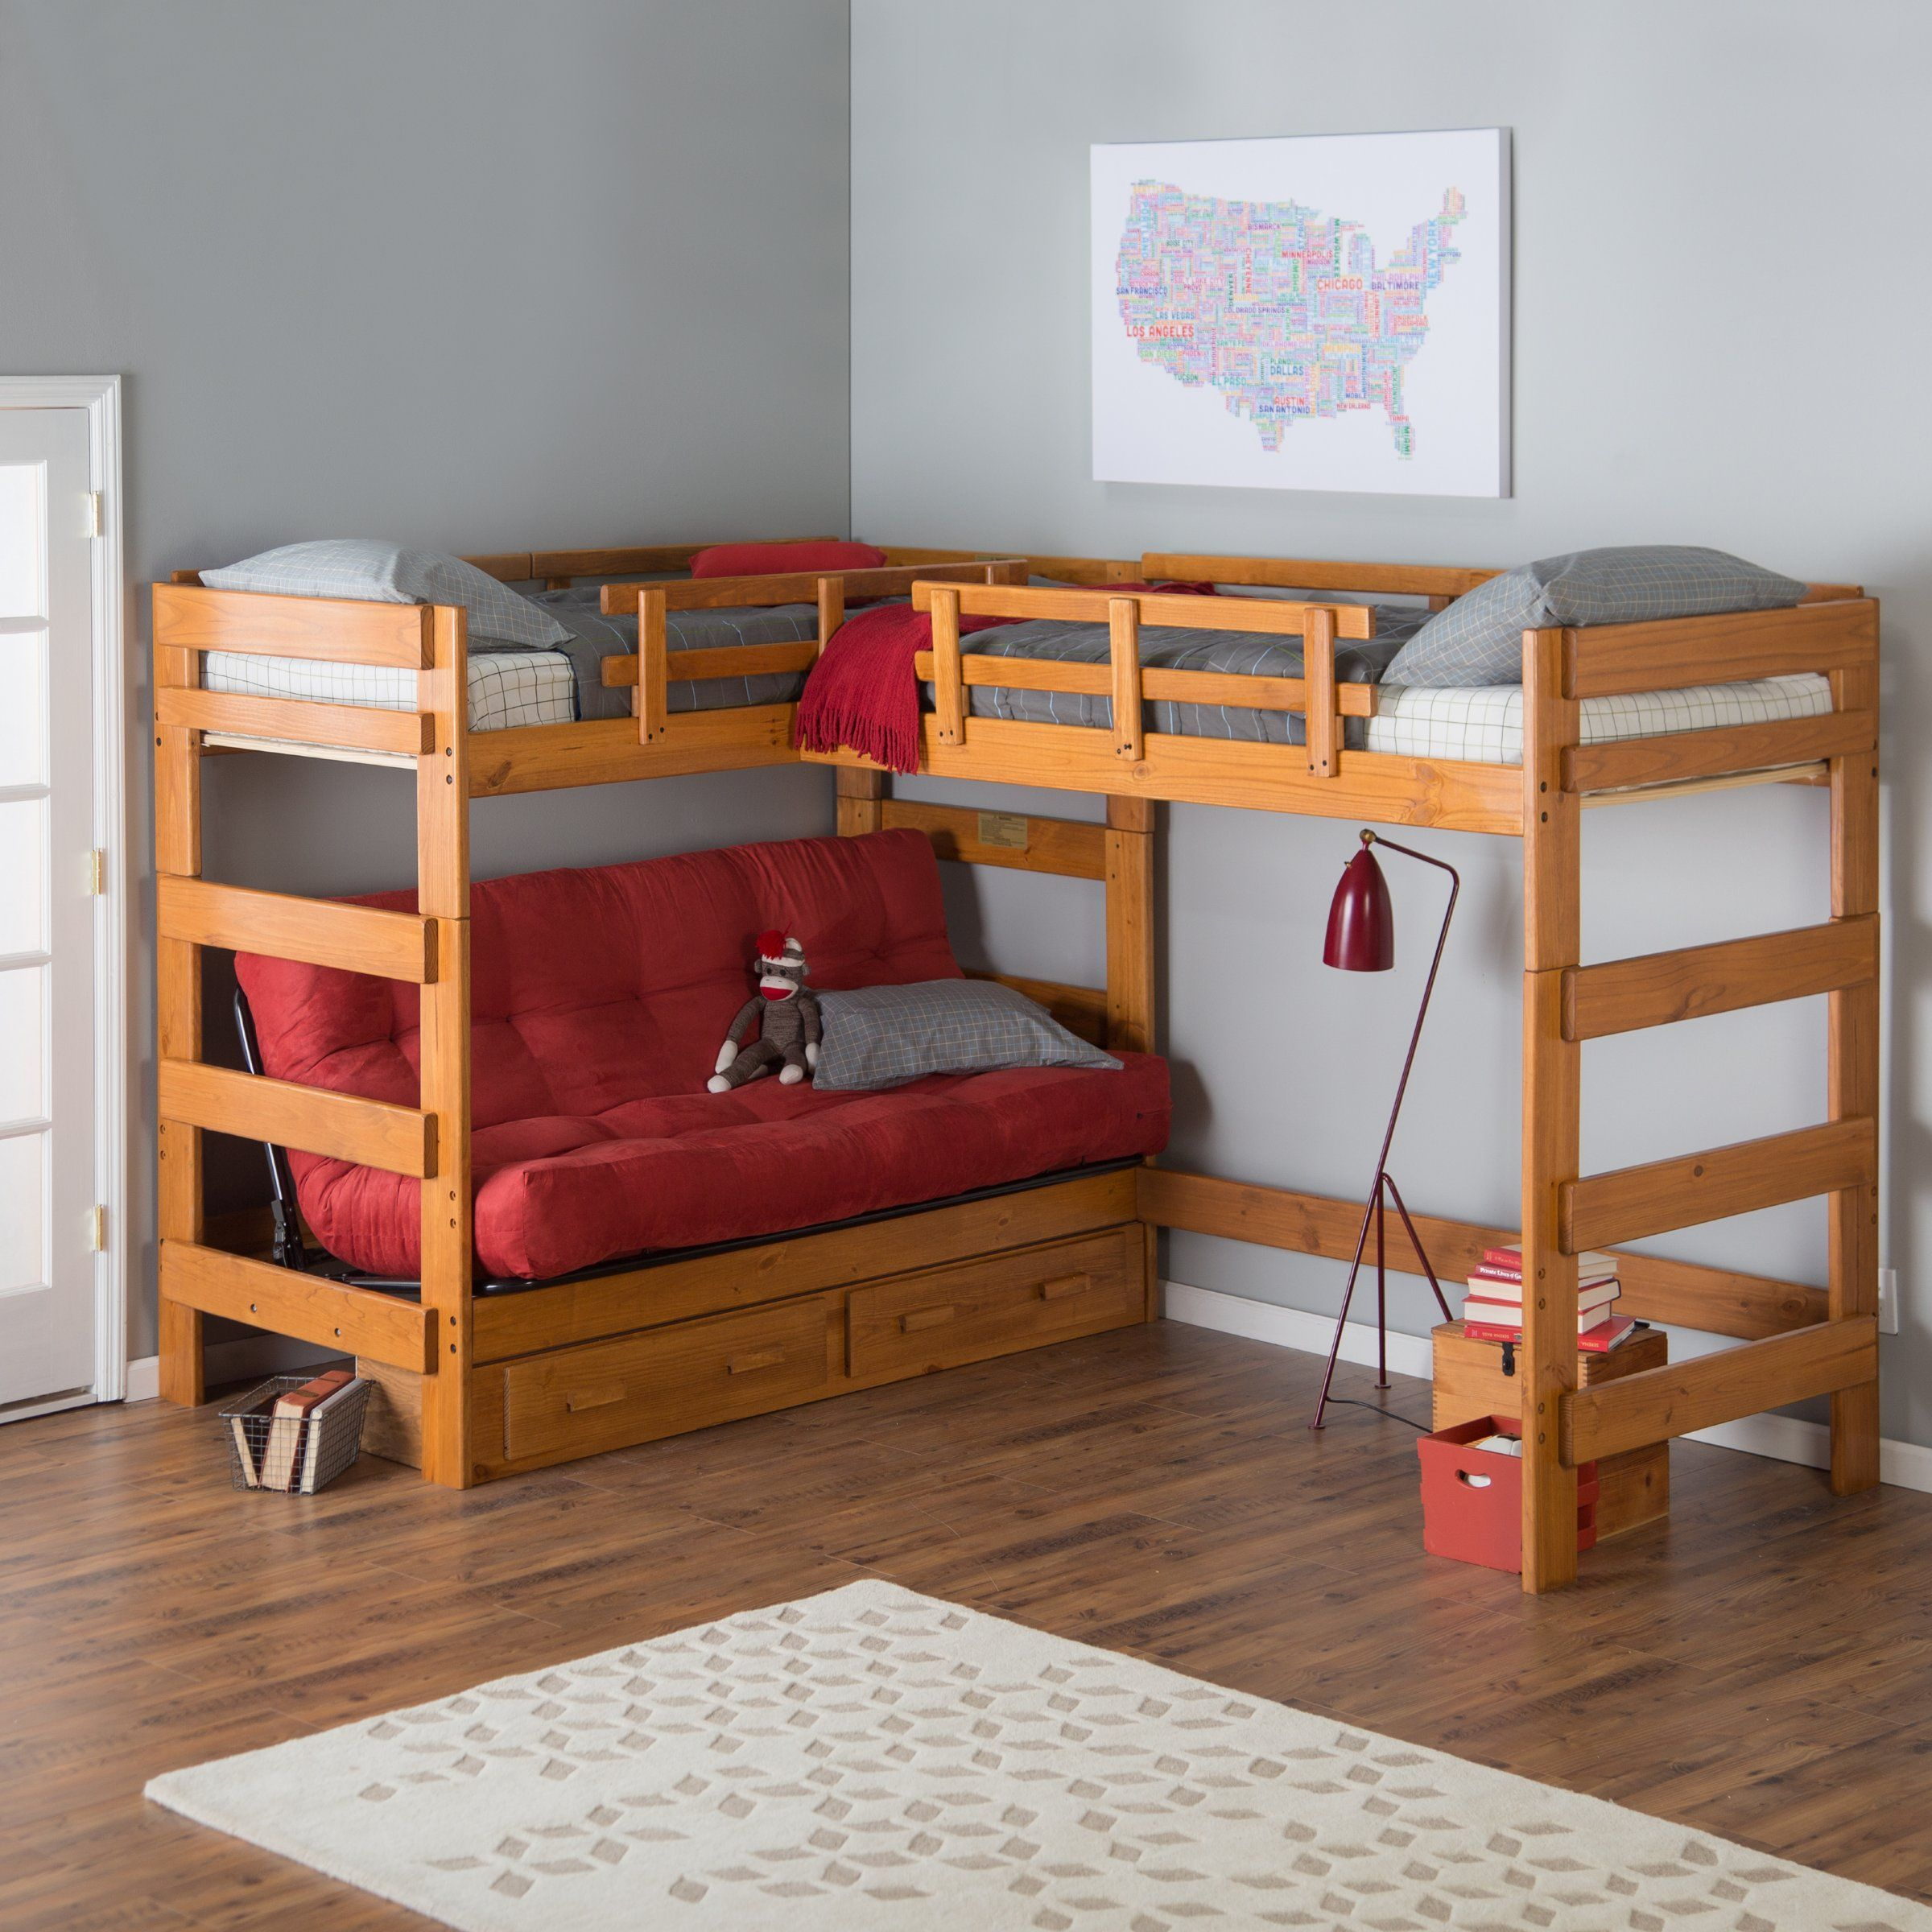 Bunk Beds With Storage Space Woodcrest Heartland Futon Bunk Bed With Extra Loft Bed